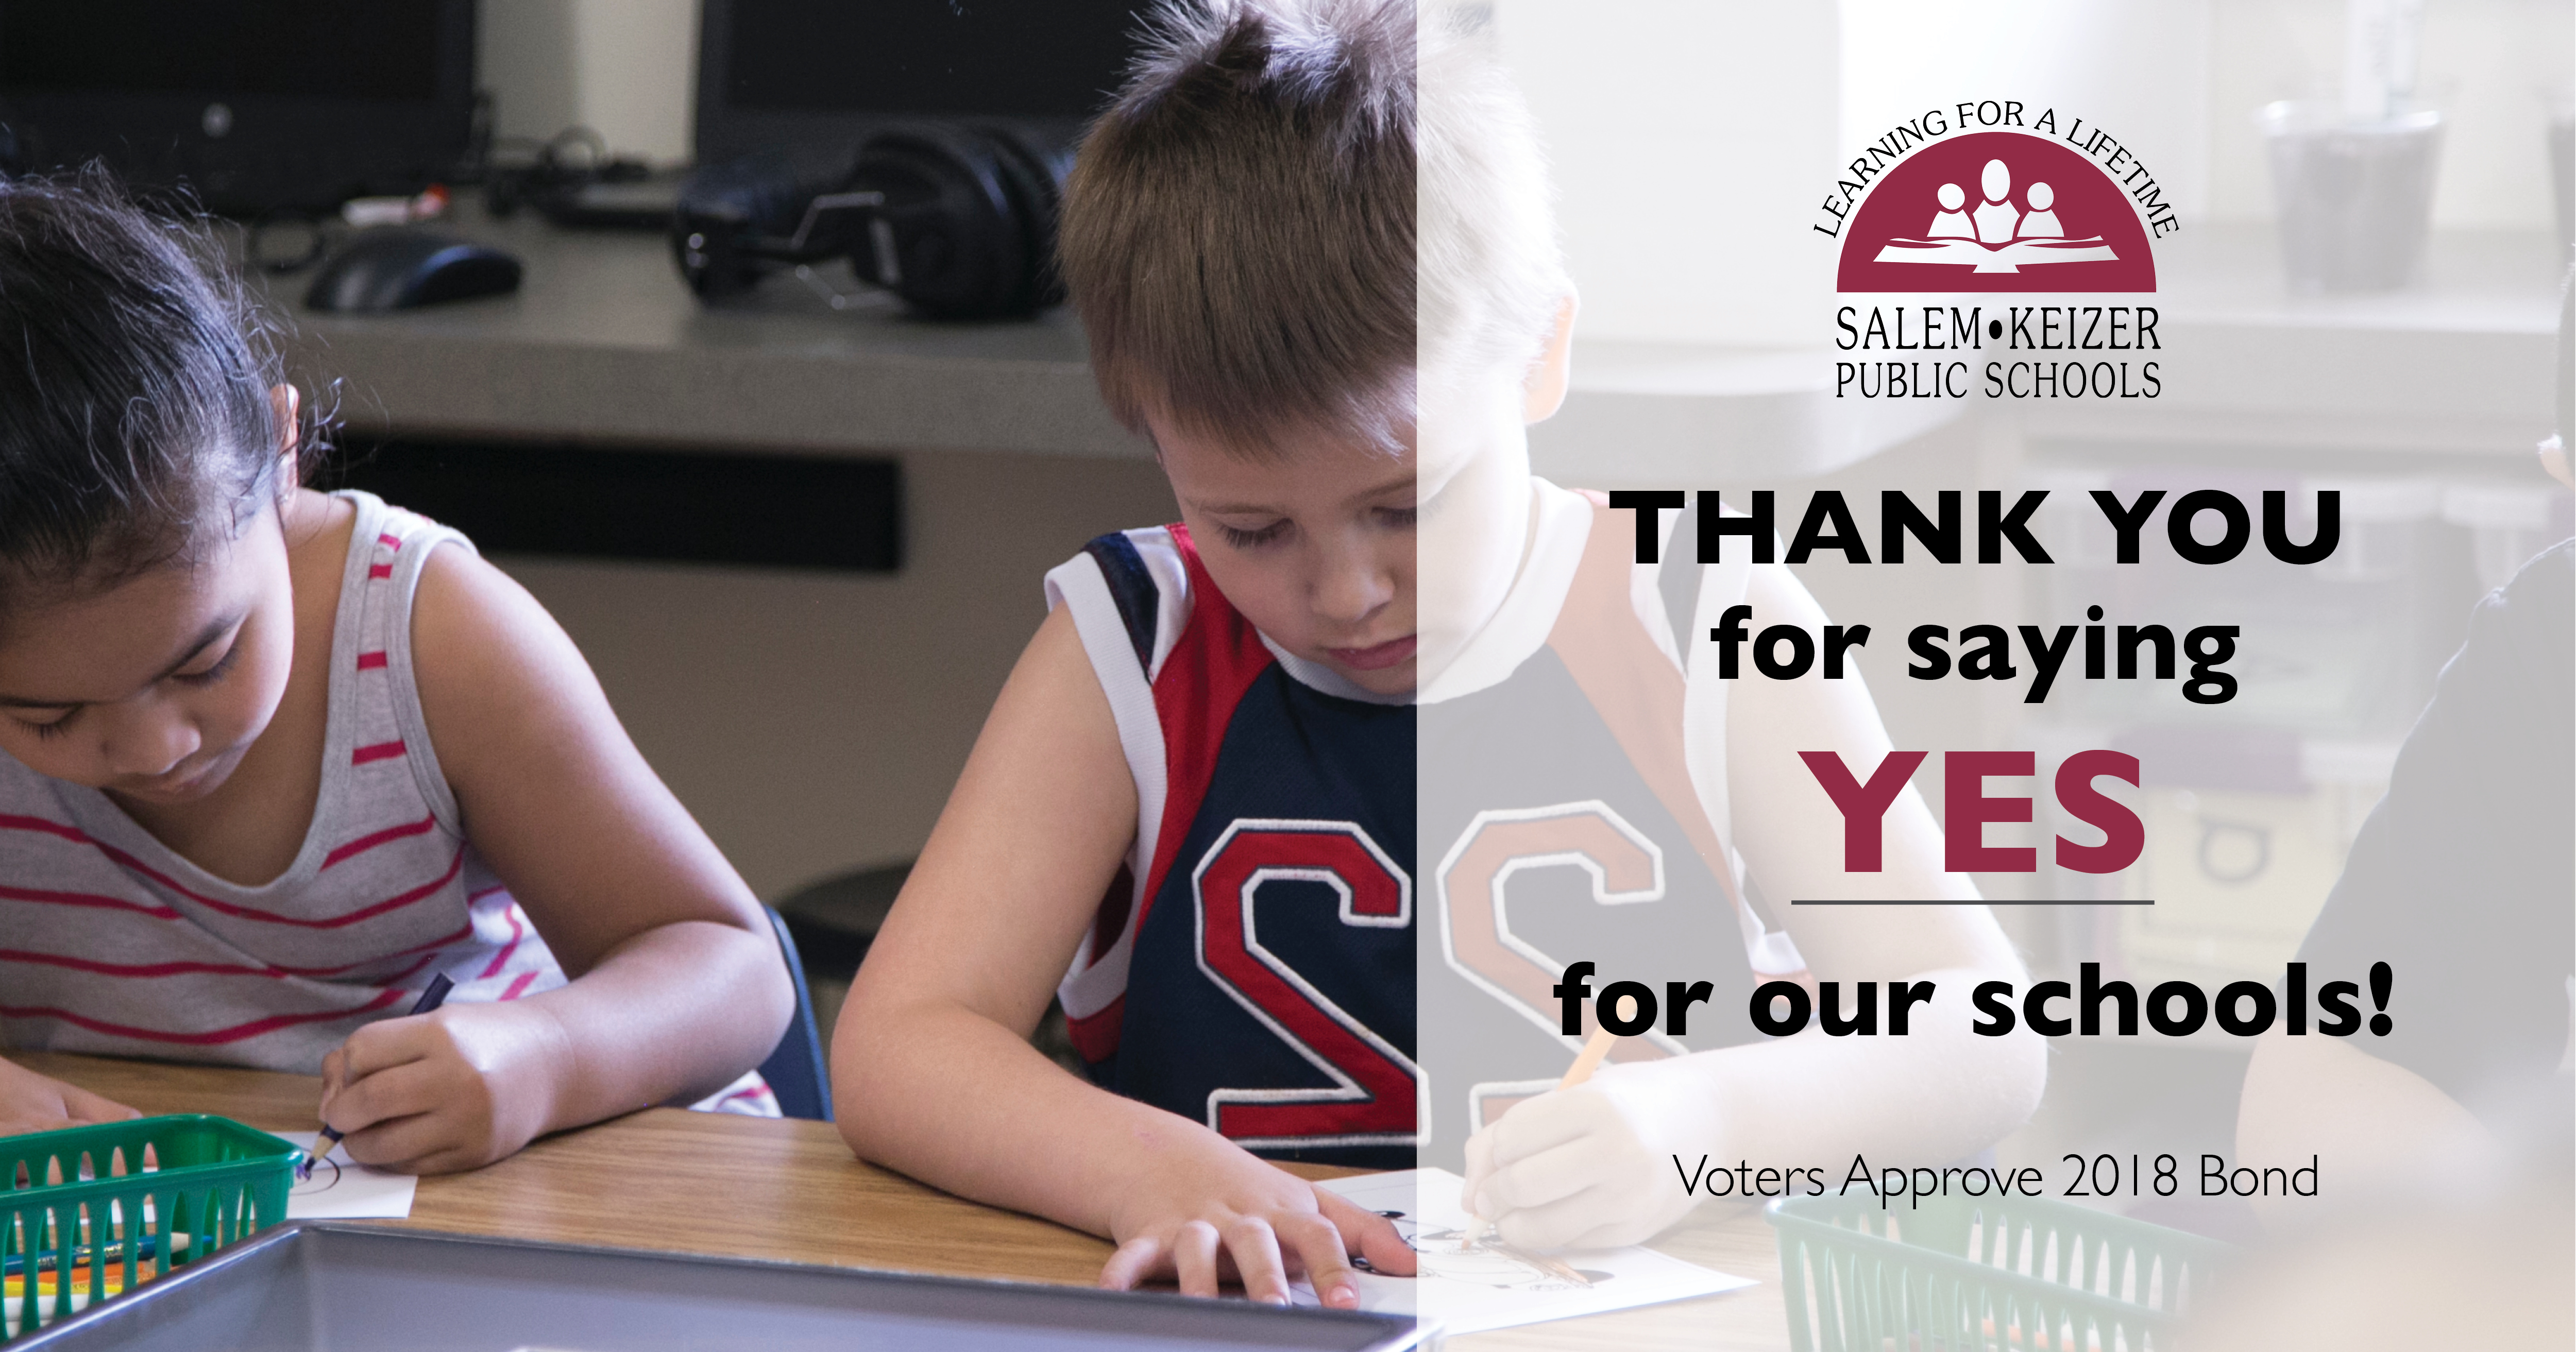 Salem-Keizer Voters Approve $619.7 Million School Bond